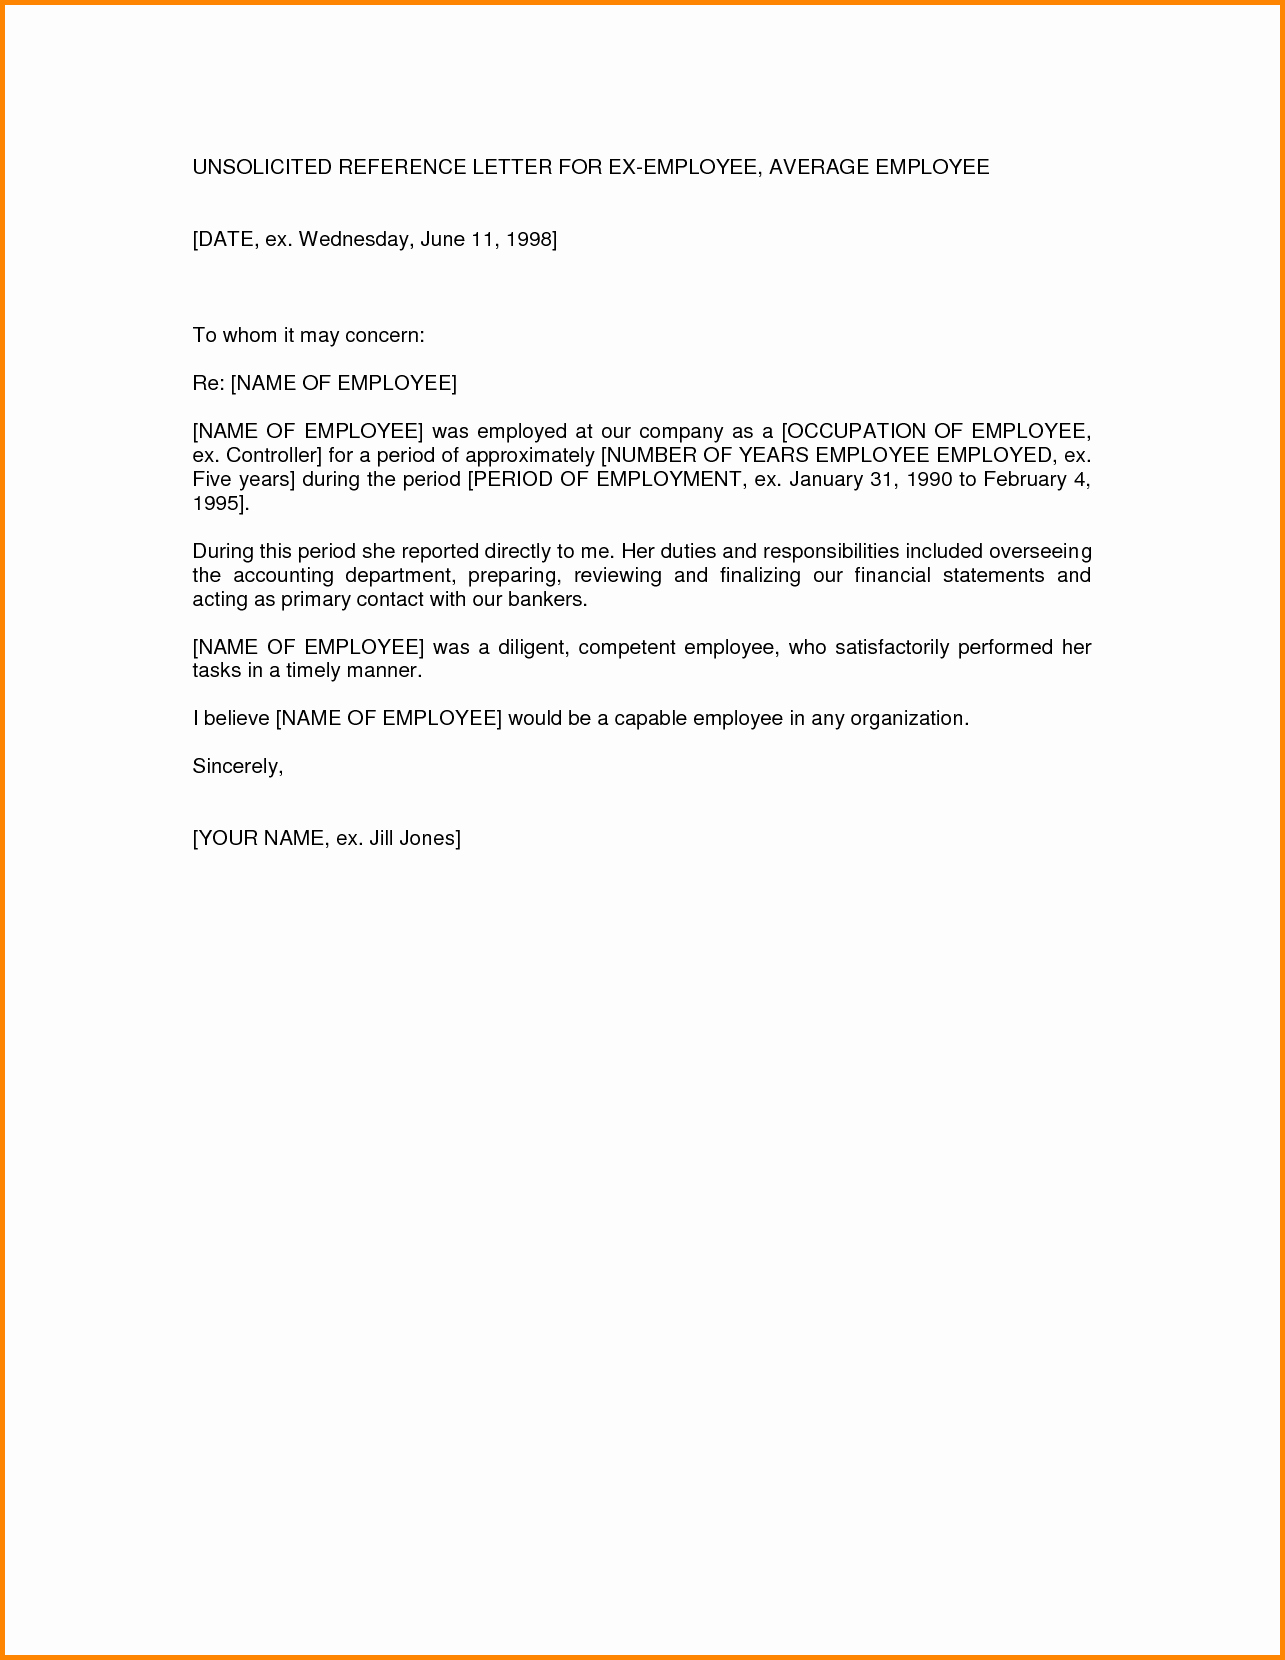 Sample Reference Letter for Employee Luxury Reference Letter Template for Employee Bamboodownunder